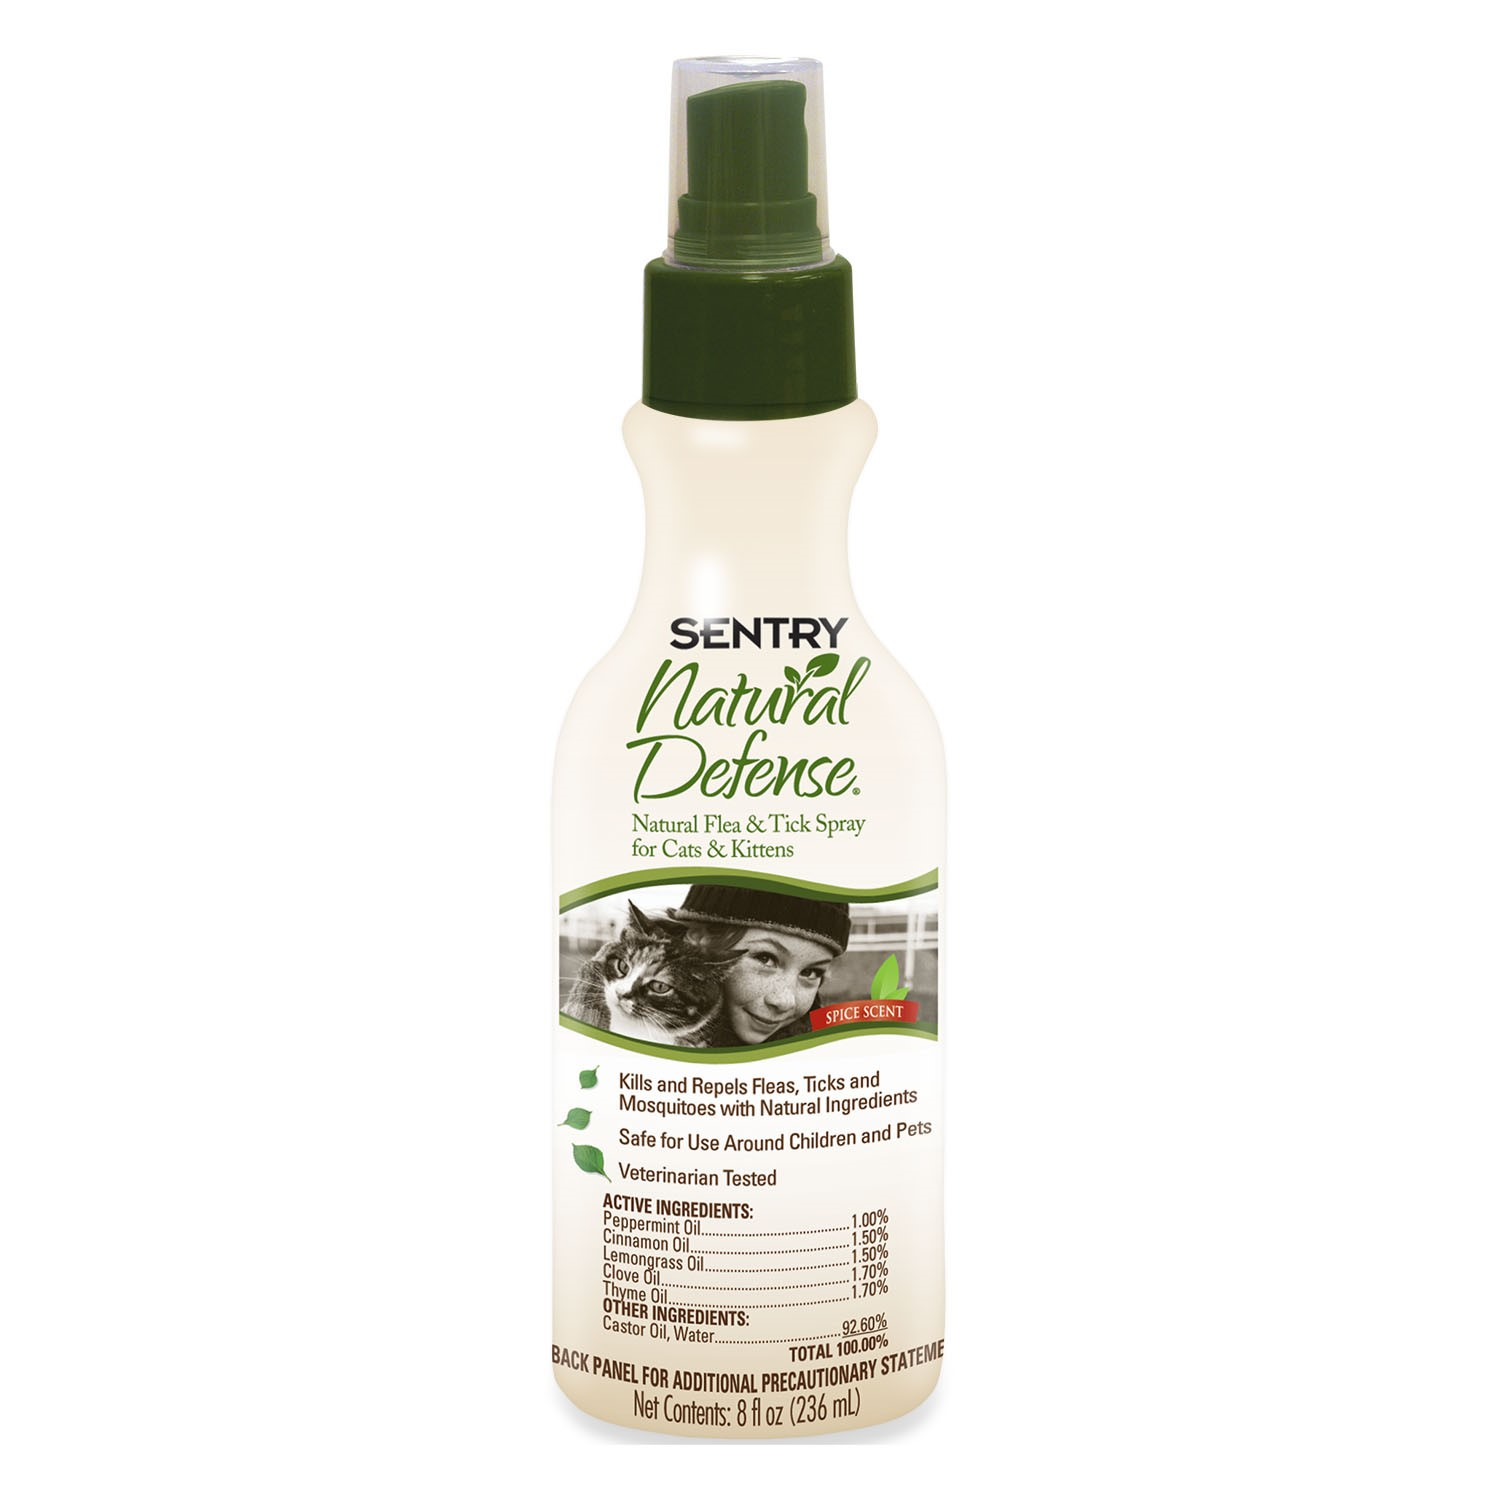 Sergeants Pet Care Products Inc Sentry Natural Defense Flea & Tick Spray For Cats & Kittens, 8 Oz